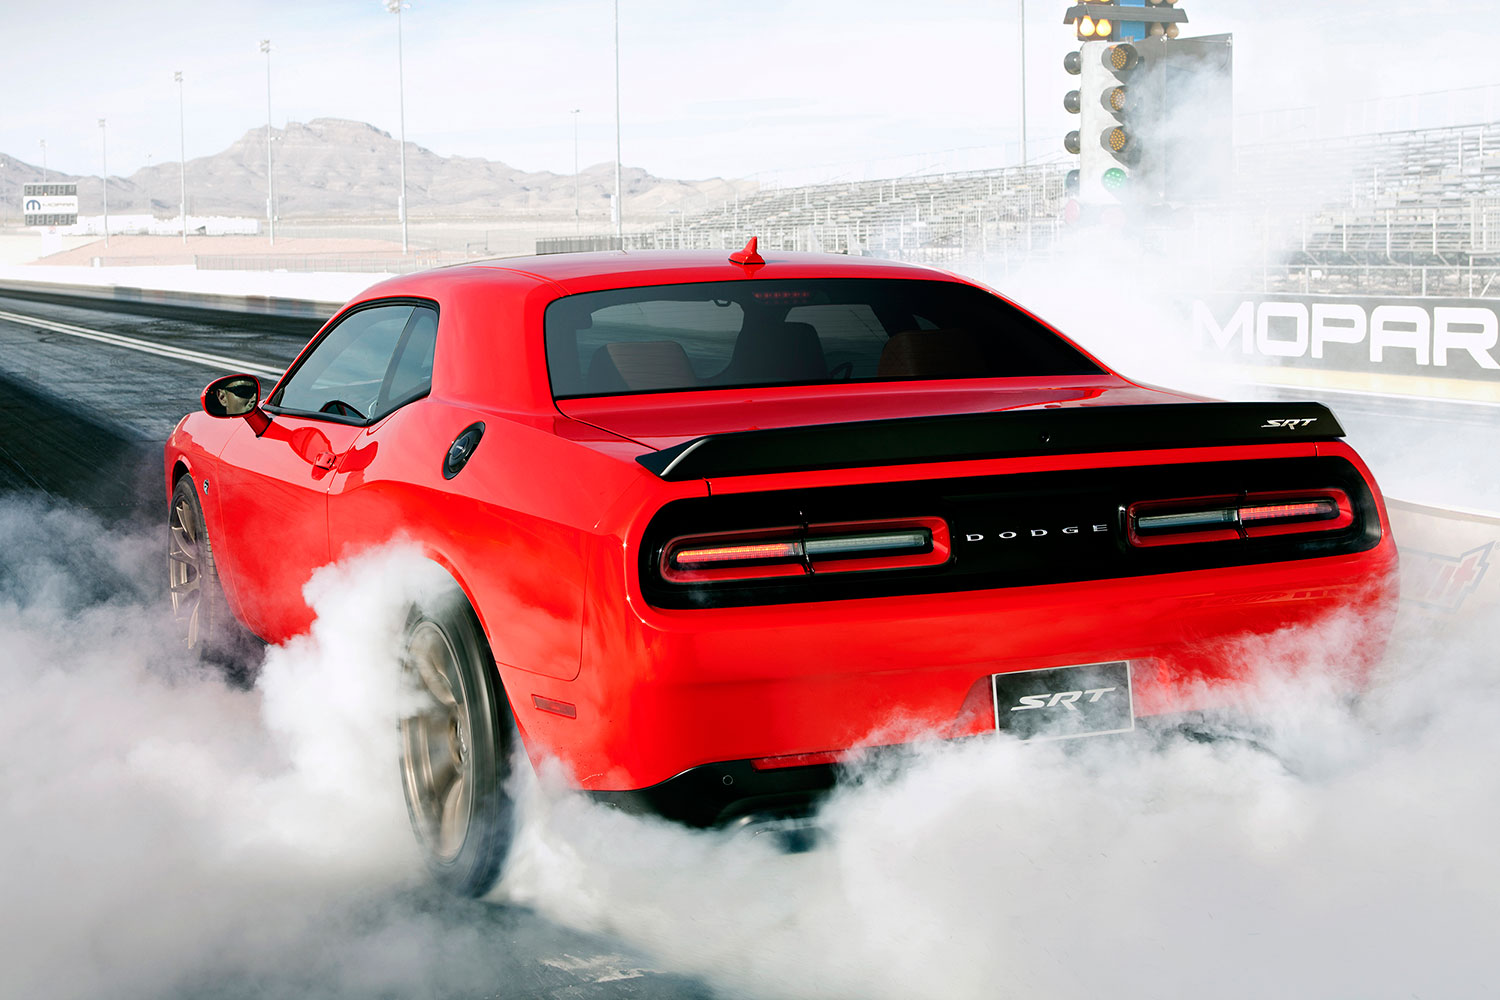 Dodge Quotes Why Dodge's Hellcat Engine Has 707 Horsepower And Why It Nearly